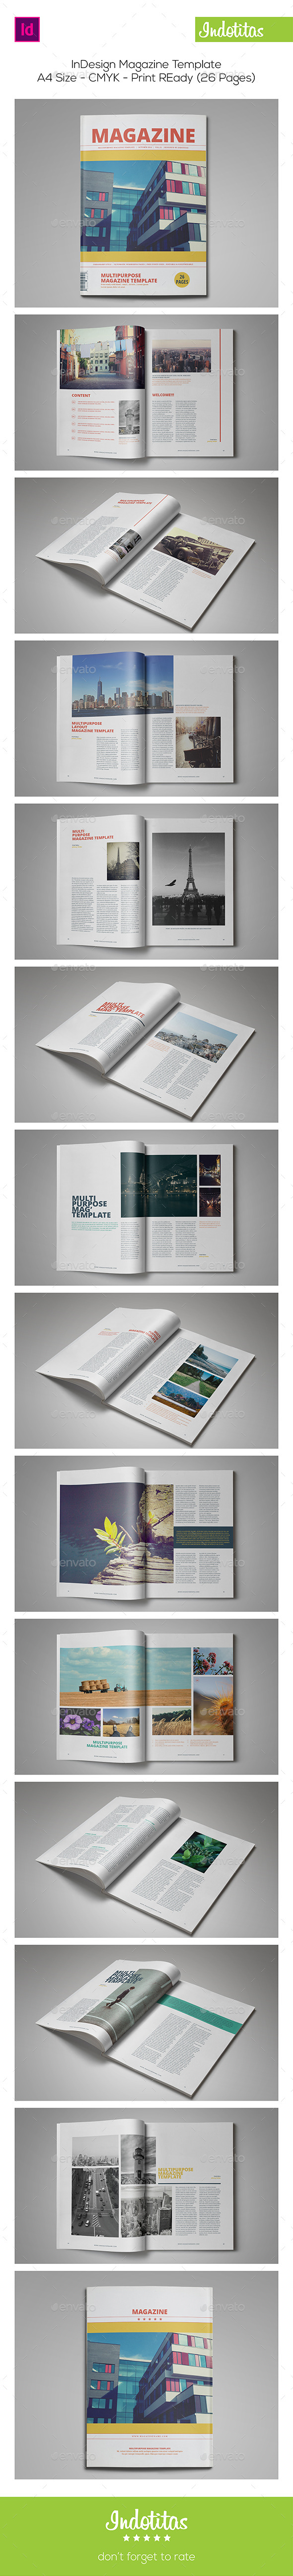 26 Pages InDesign Magazine Template